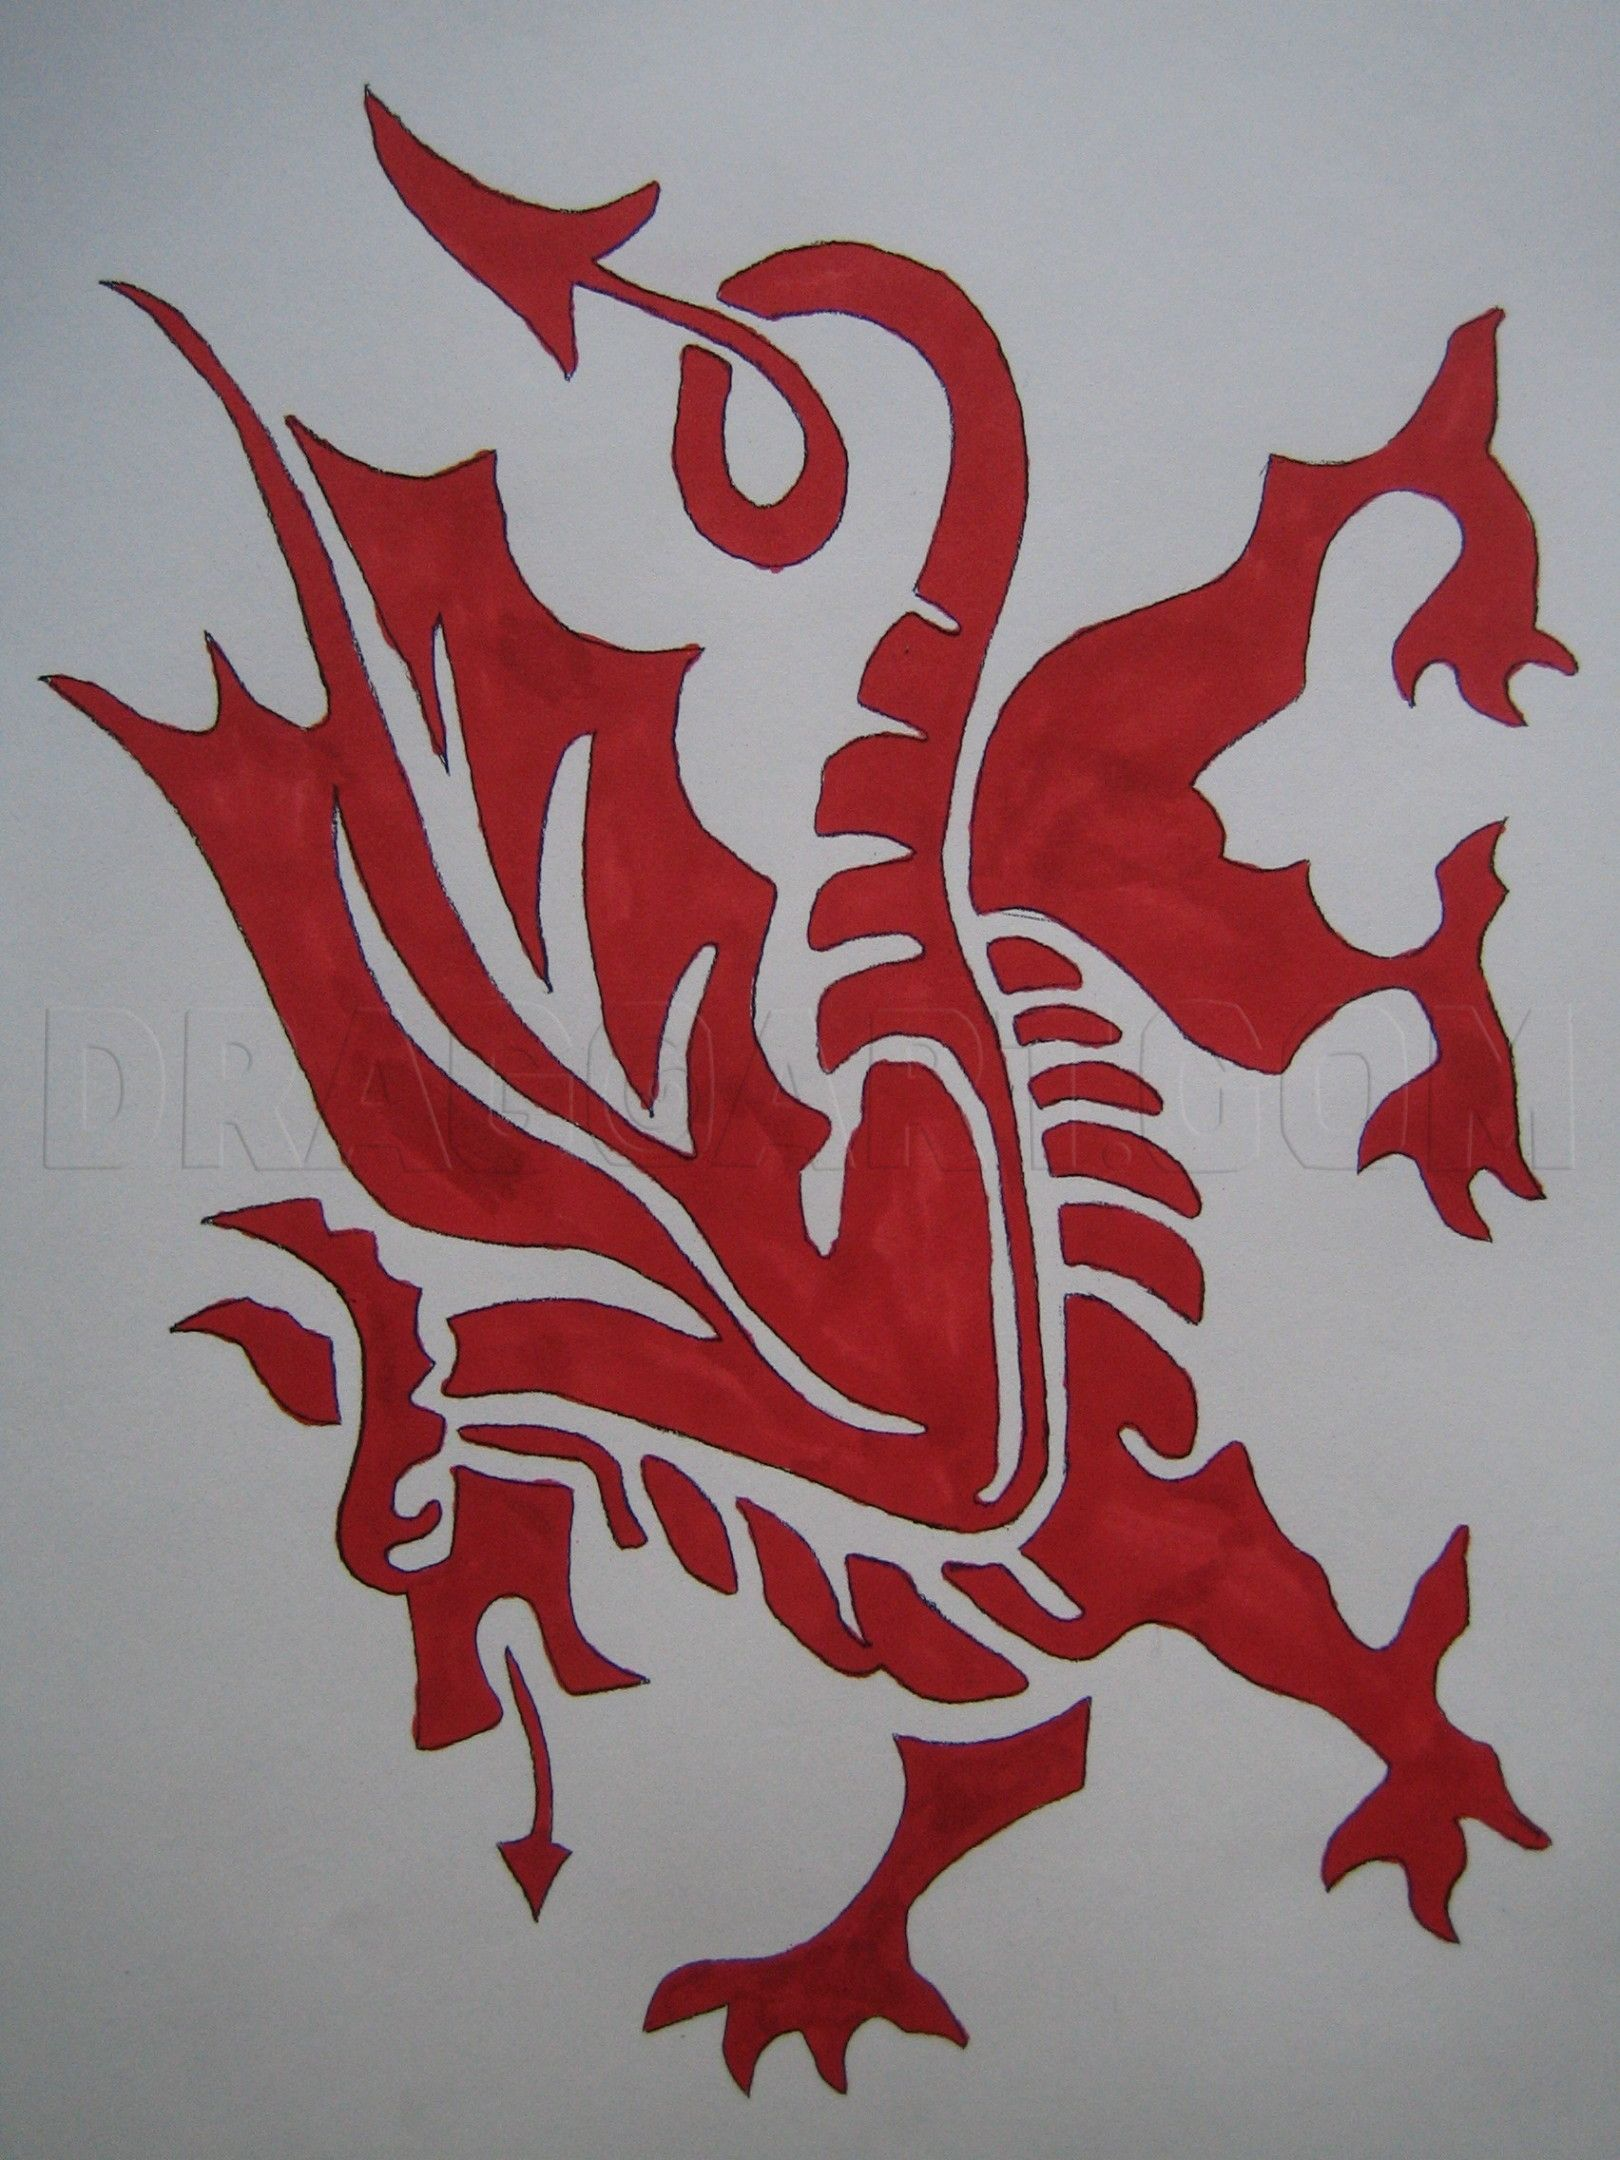 How To Draw The Welsh Dragon Step By Step Drawing Guide By Groucho101 Dragoart Com Welsh Dragon Dragon Silhouette Drawings [ 2160 x 1620 Pixel ]